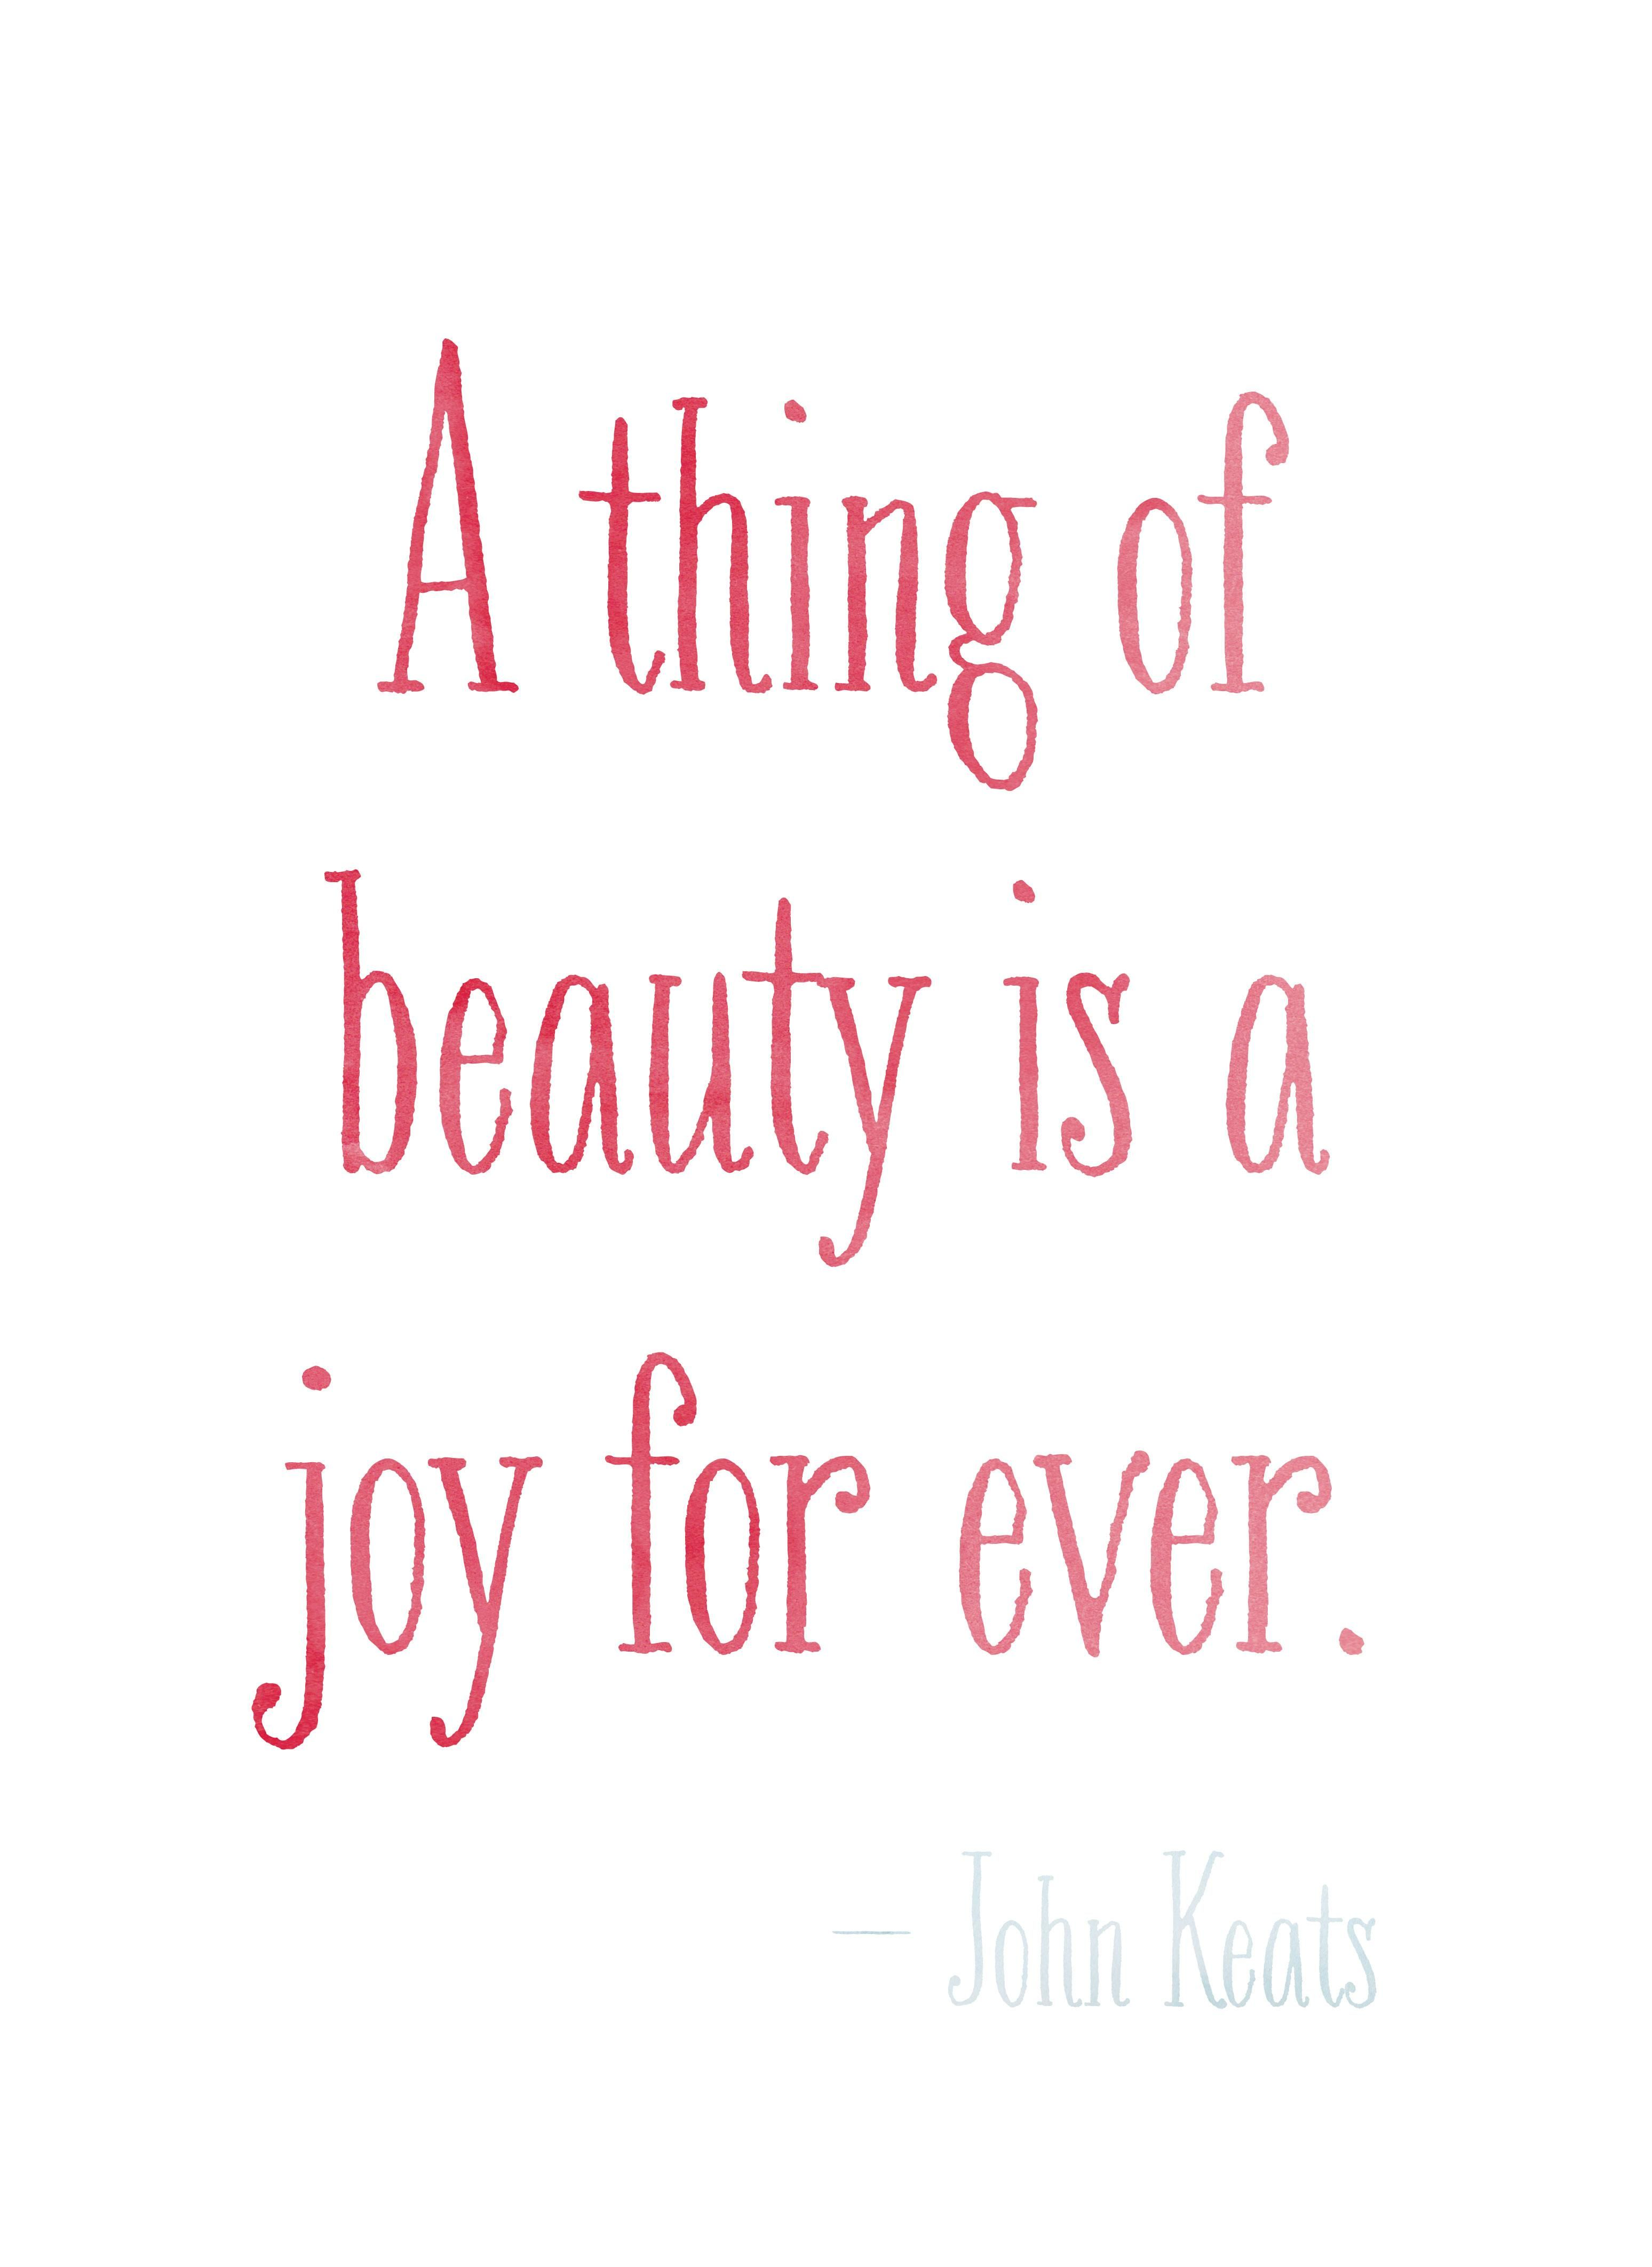 Art Print Watercolor Joy Quote Forever Framed Quotes A Thing Of Beauty John Keat Theme